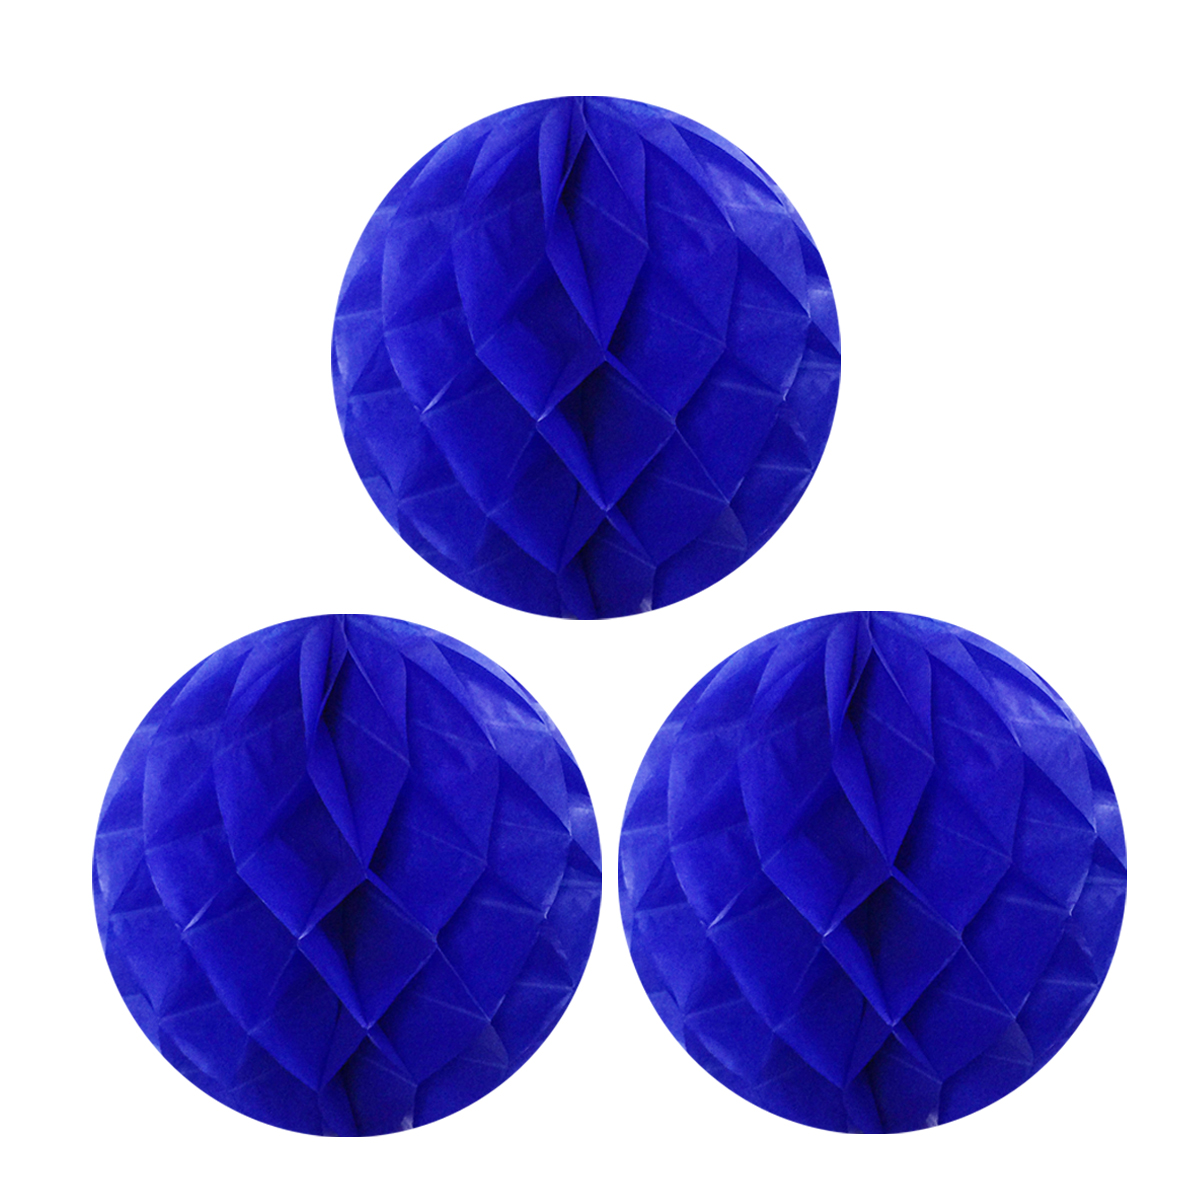 """Wrapables® 12"""" Set of 3 Tissue Honeycomb Ball Party Decorations for Weddings, Birthday Parties, Baby Showers, and Nursery Décor, Orange"""